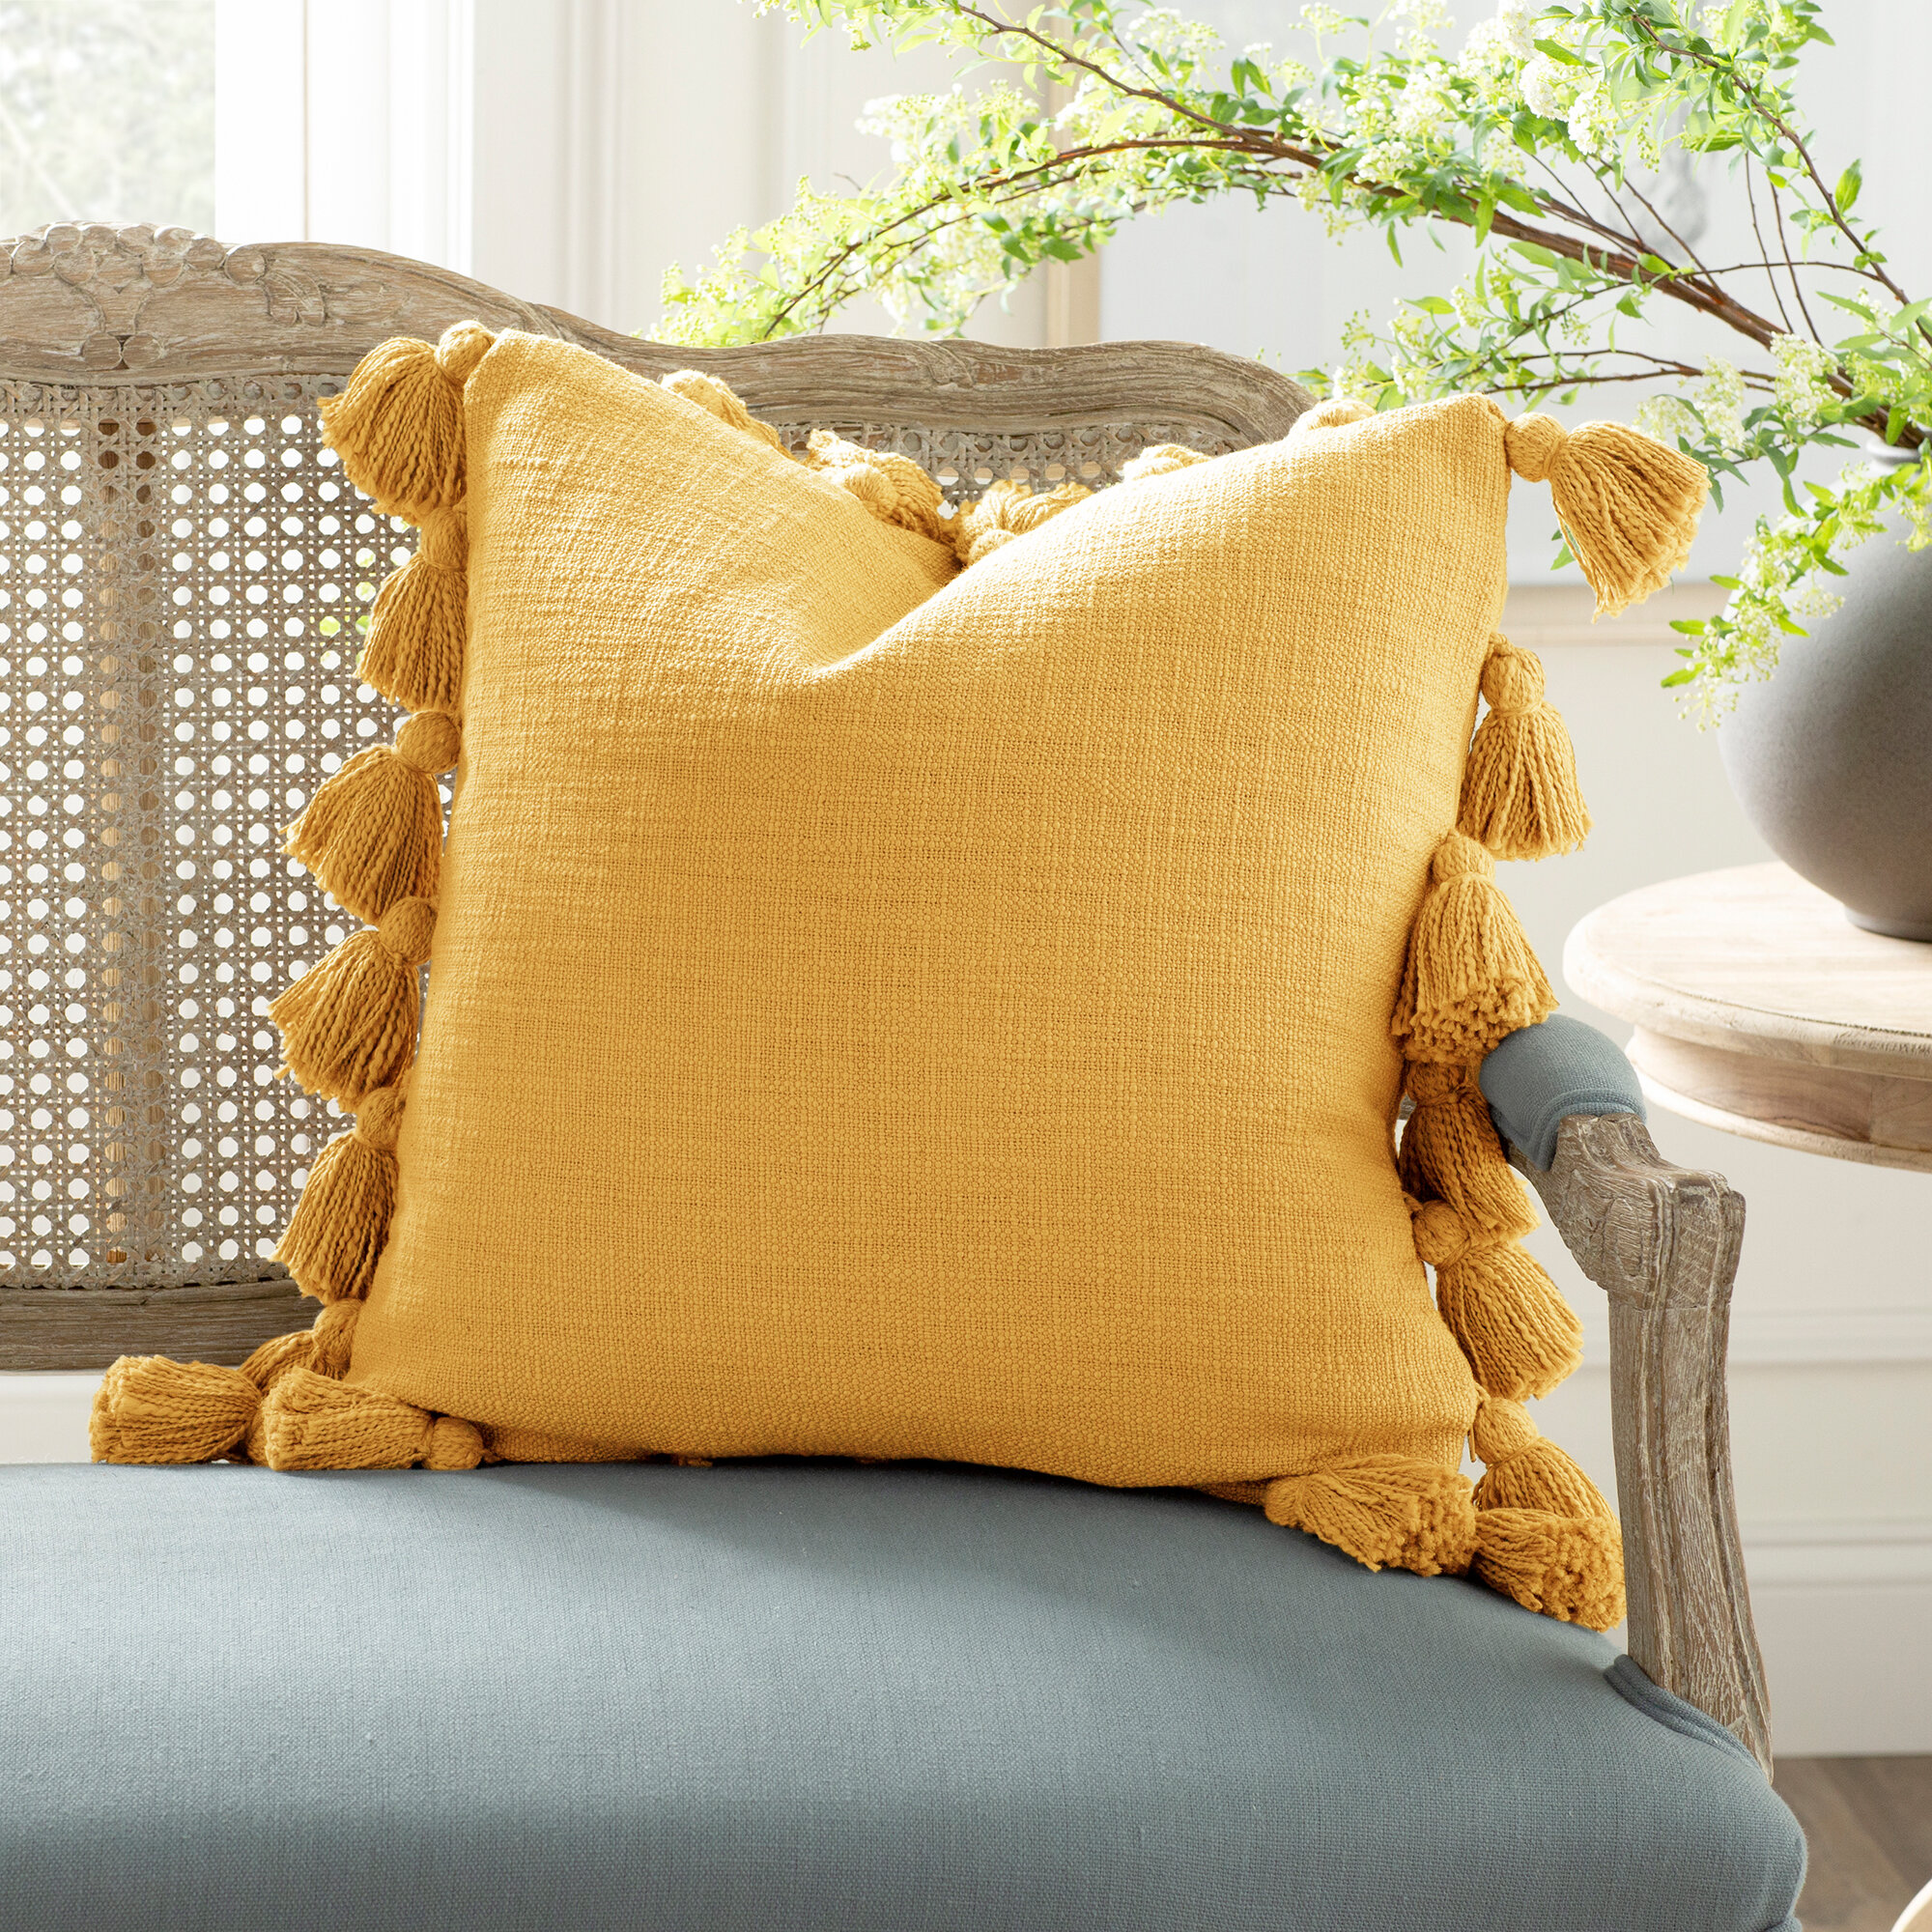 Green Yellow And Gold Throw Pillows Free Shipping Over 35 Wayfair